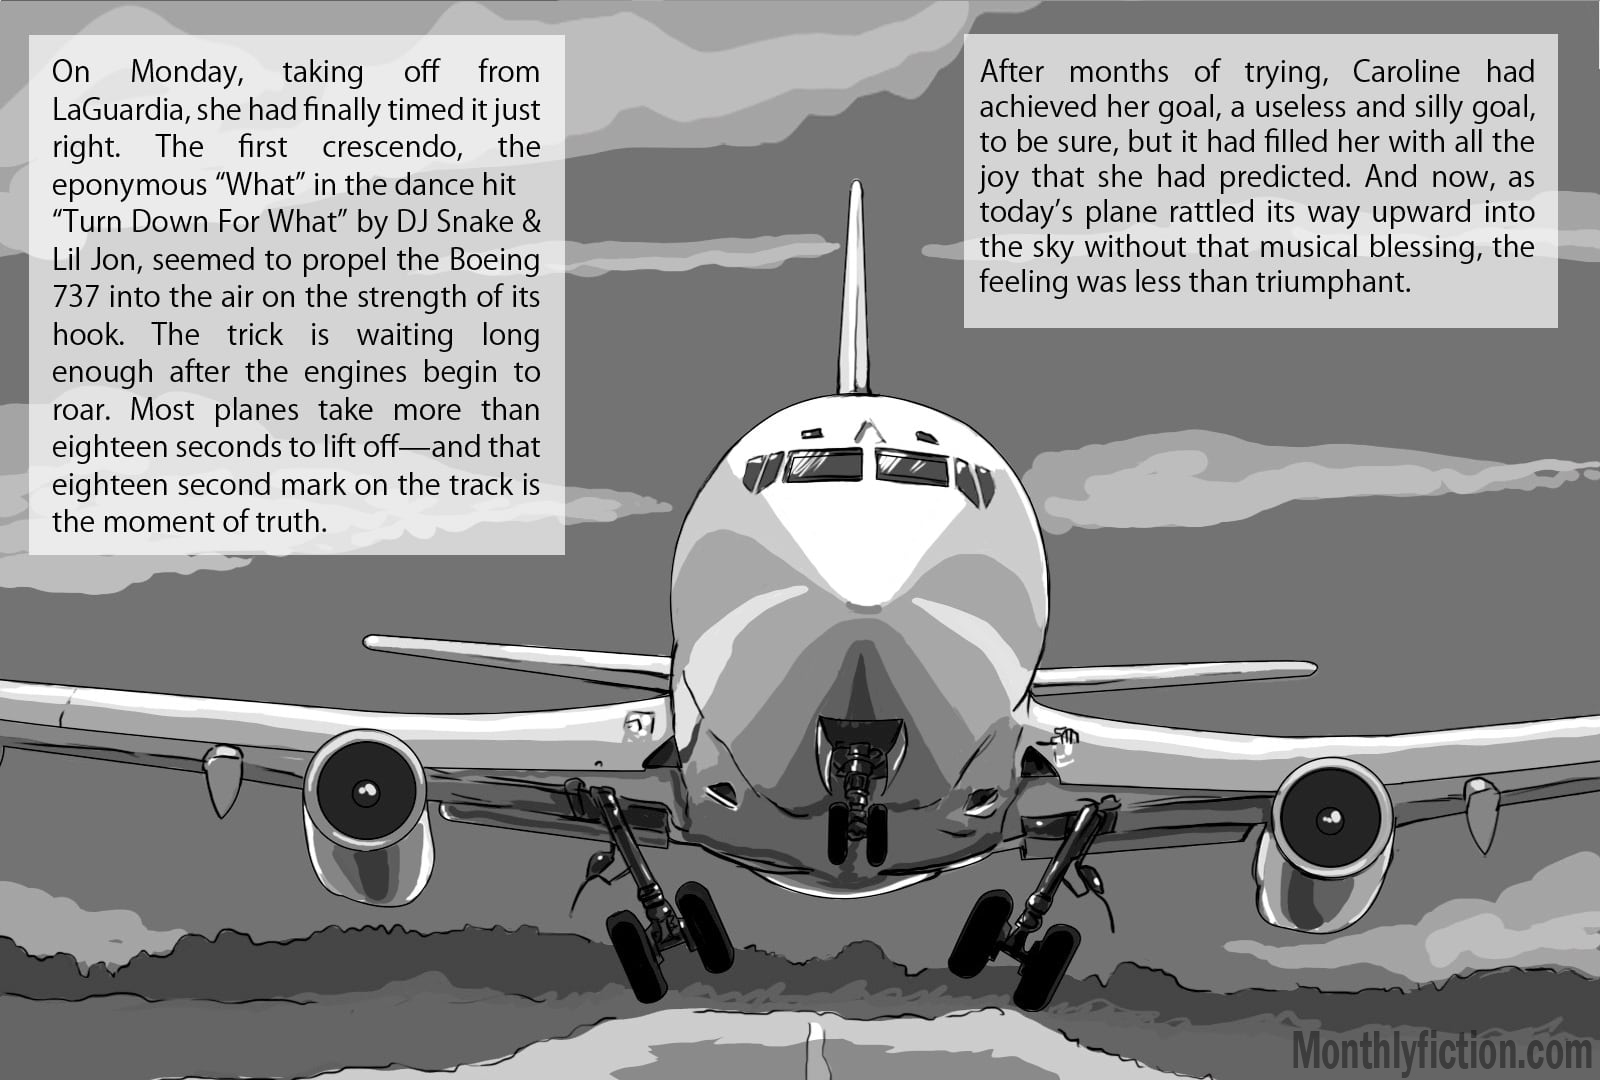 Monthly Fiction Takeoffs and landings page 2 illustration illustraded story